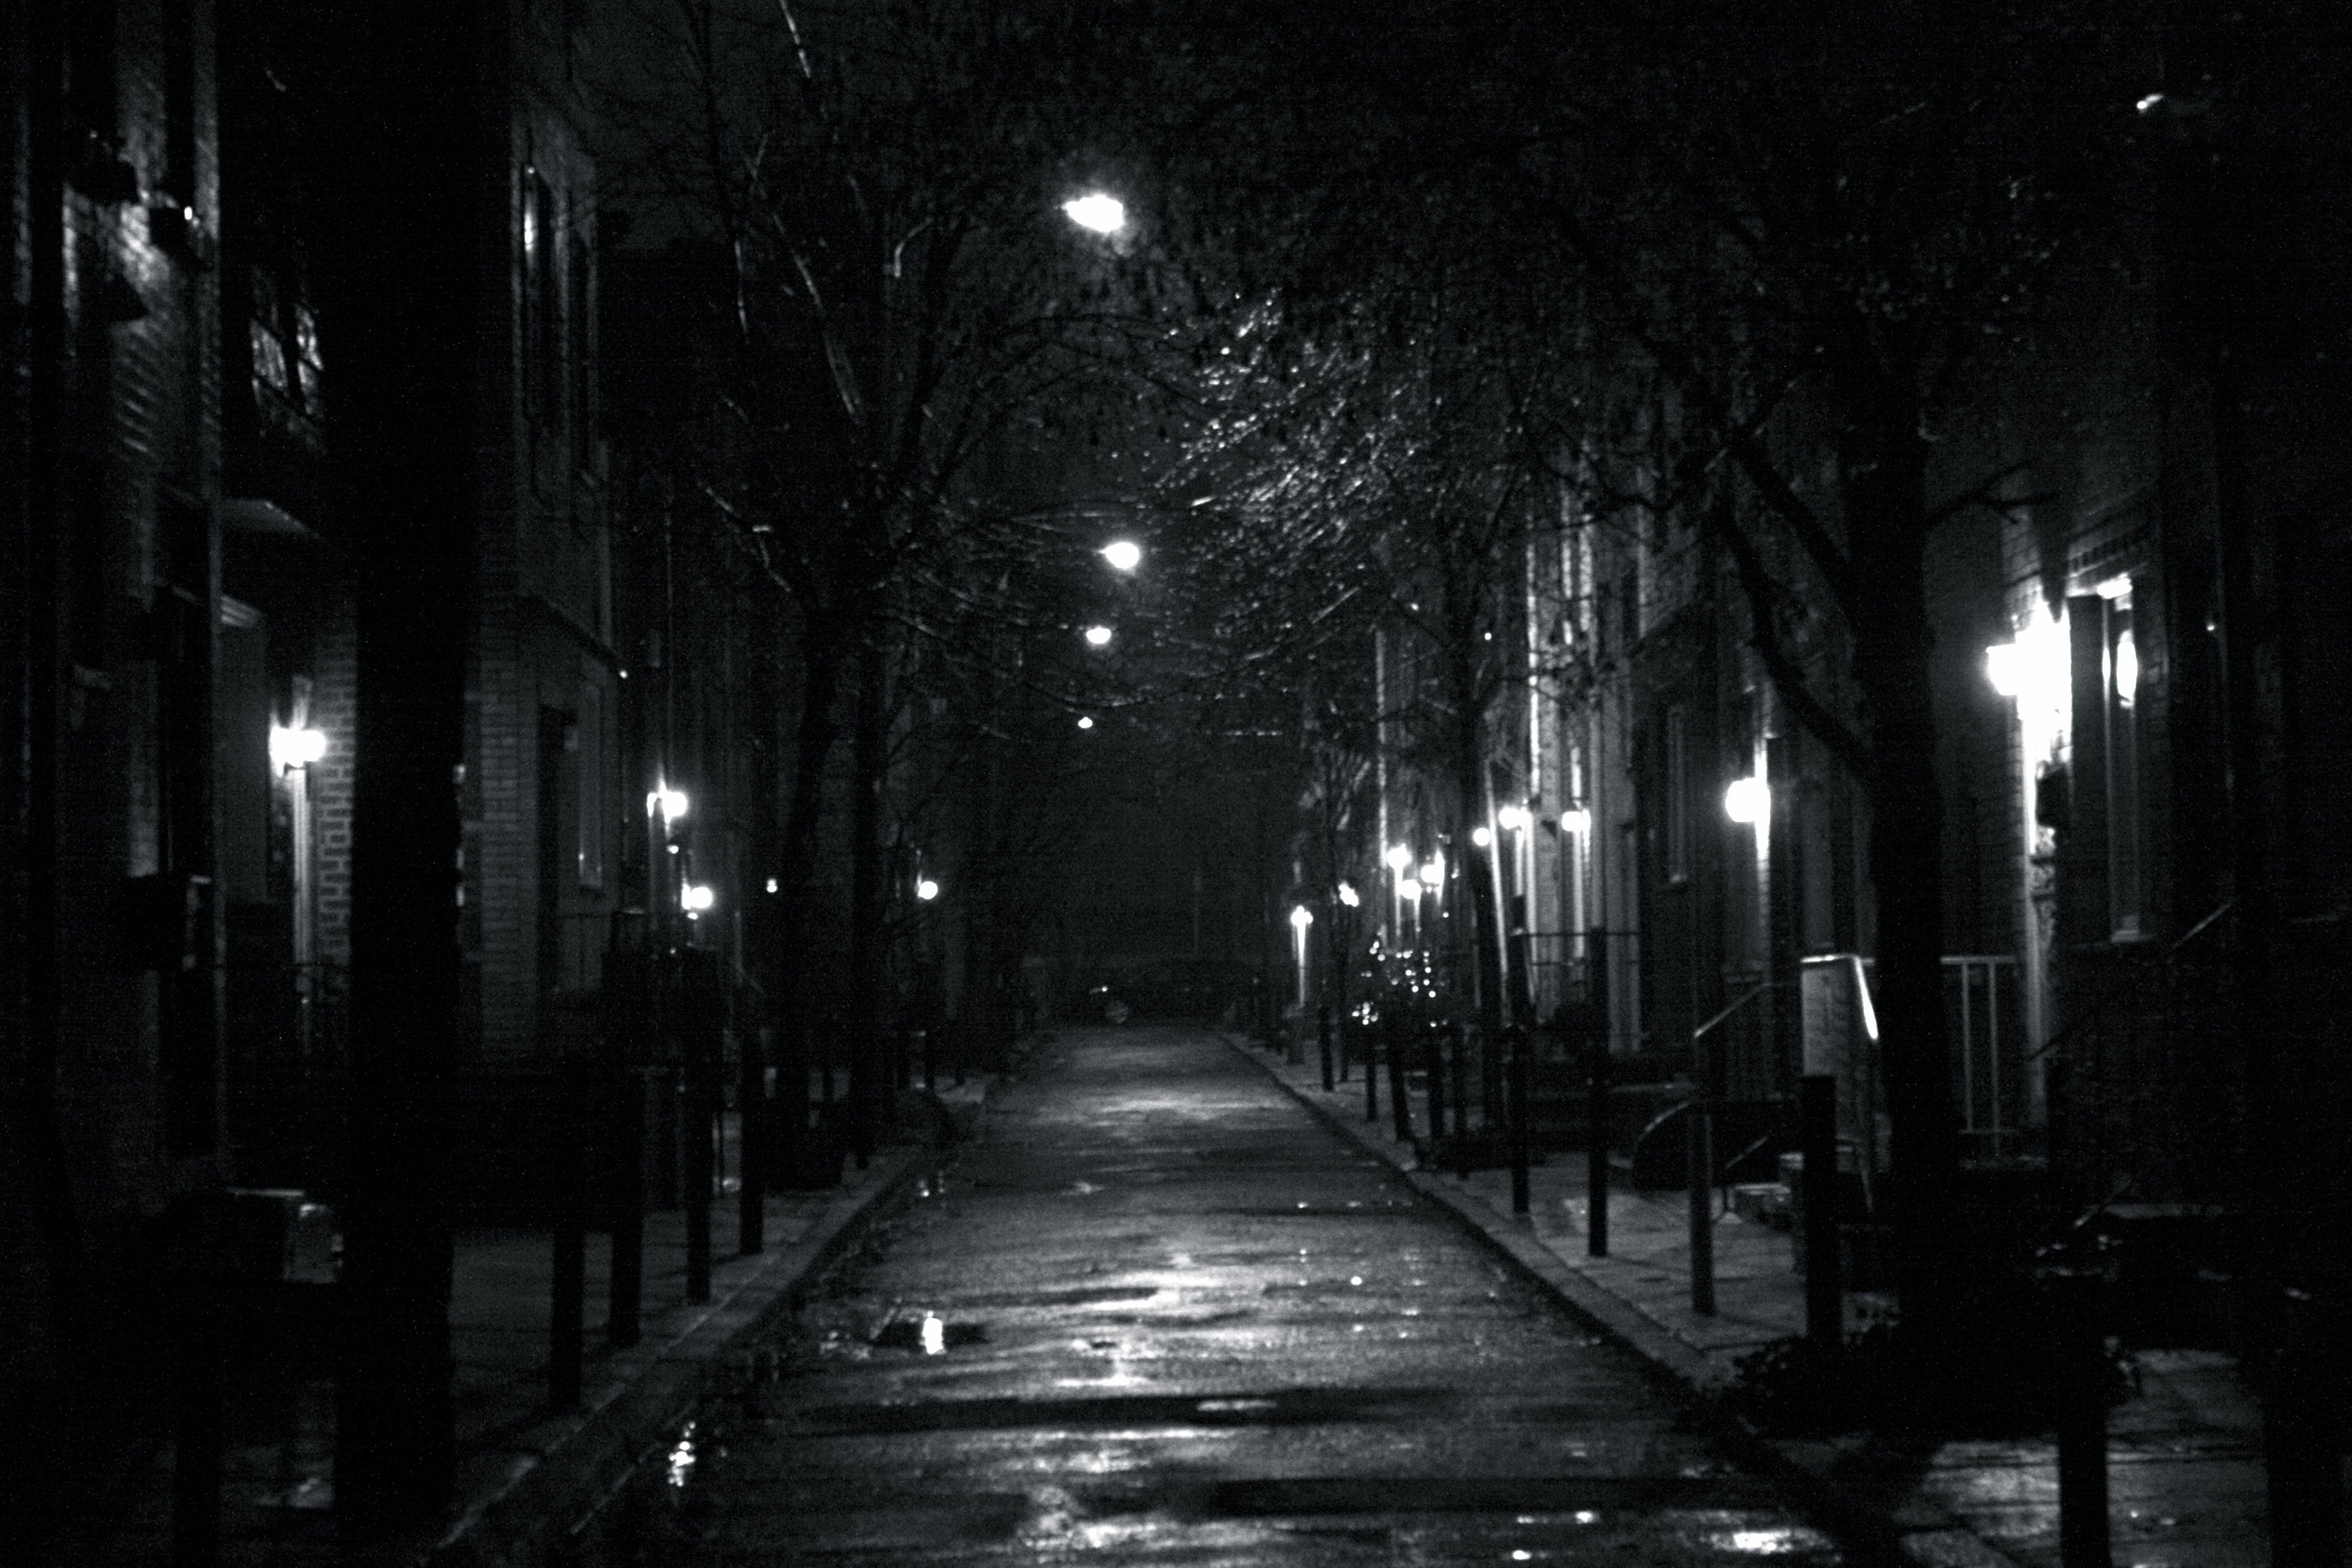 Dark City Street At Night Simple Self Defense Techniques You Should Know In Dire